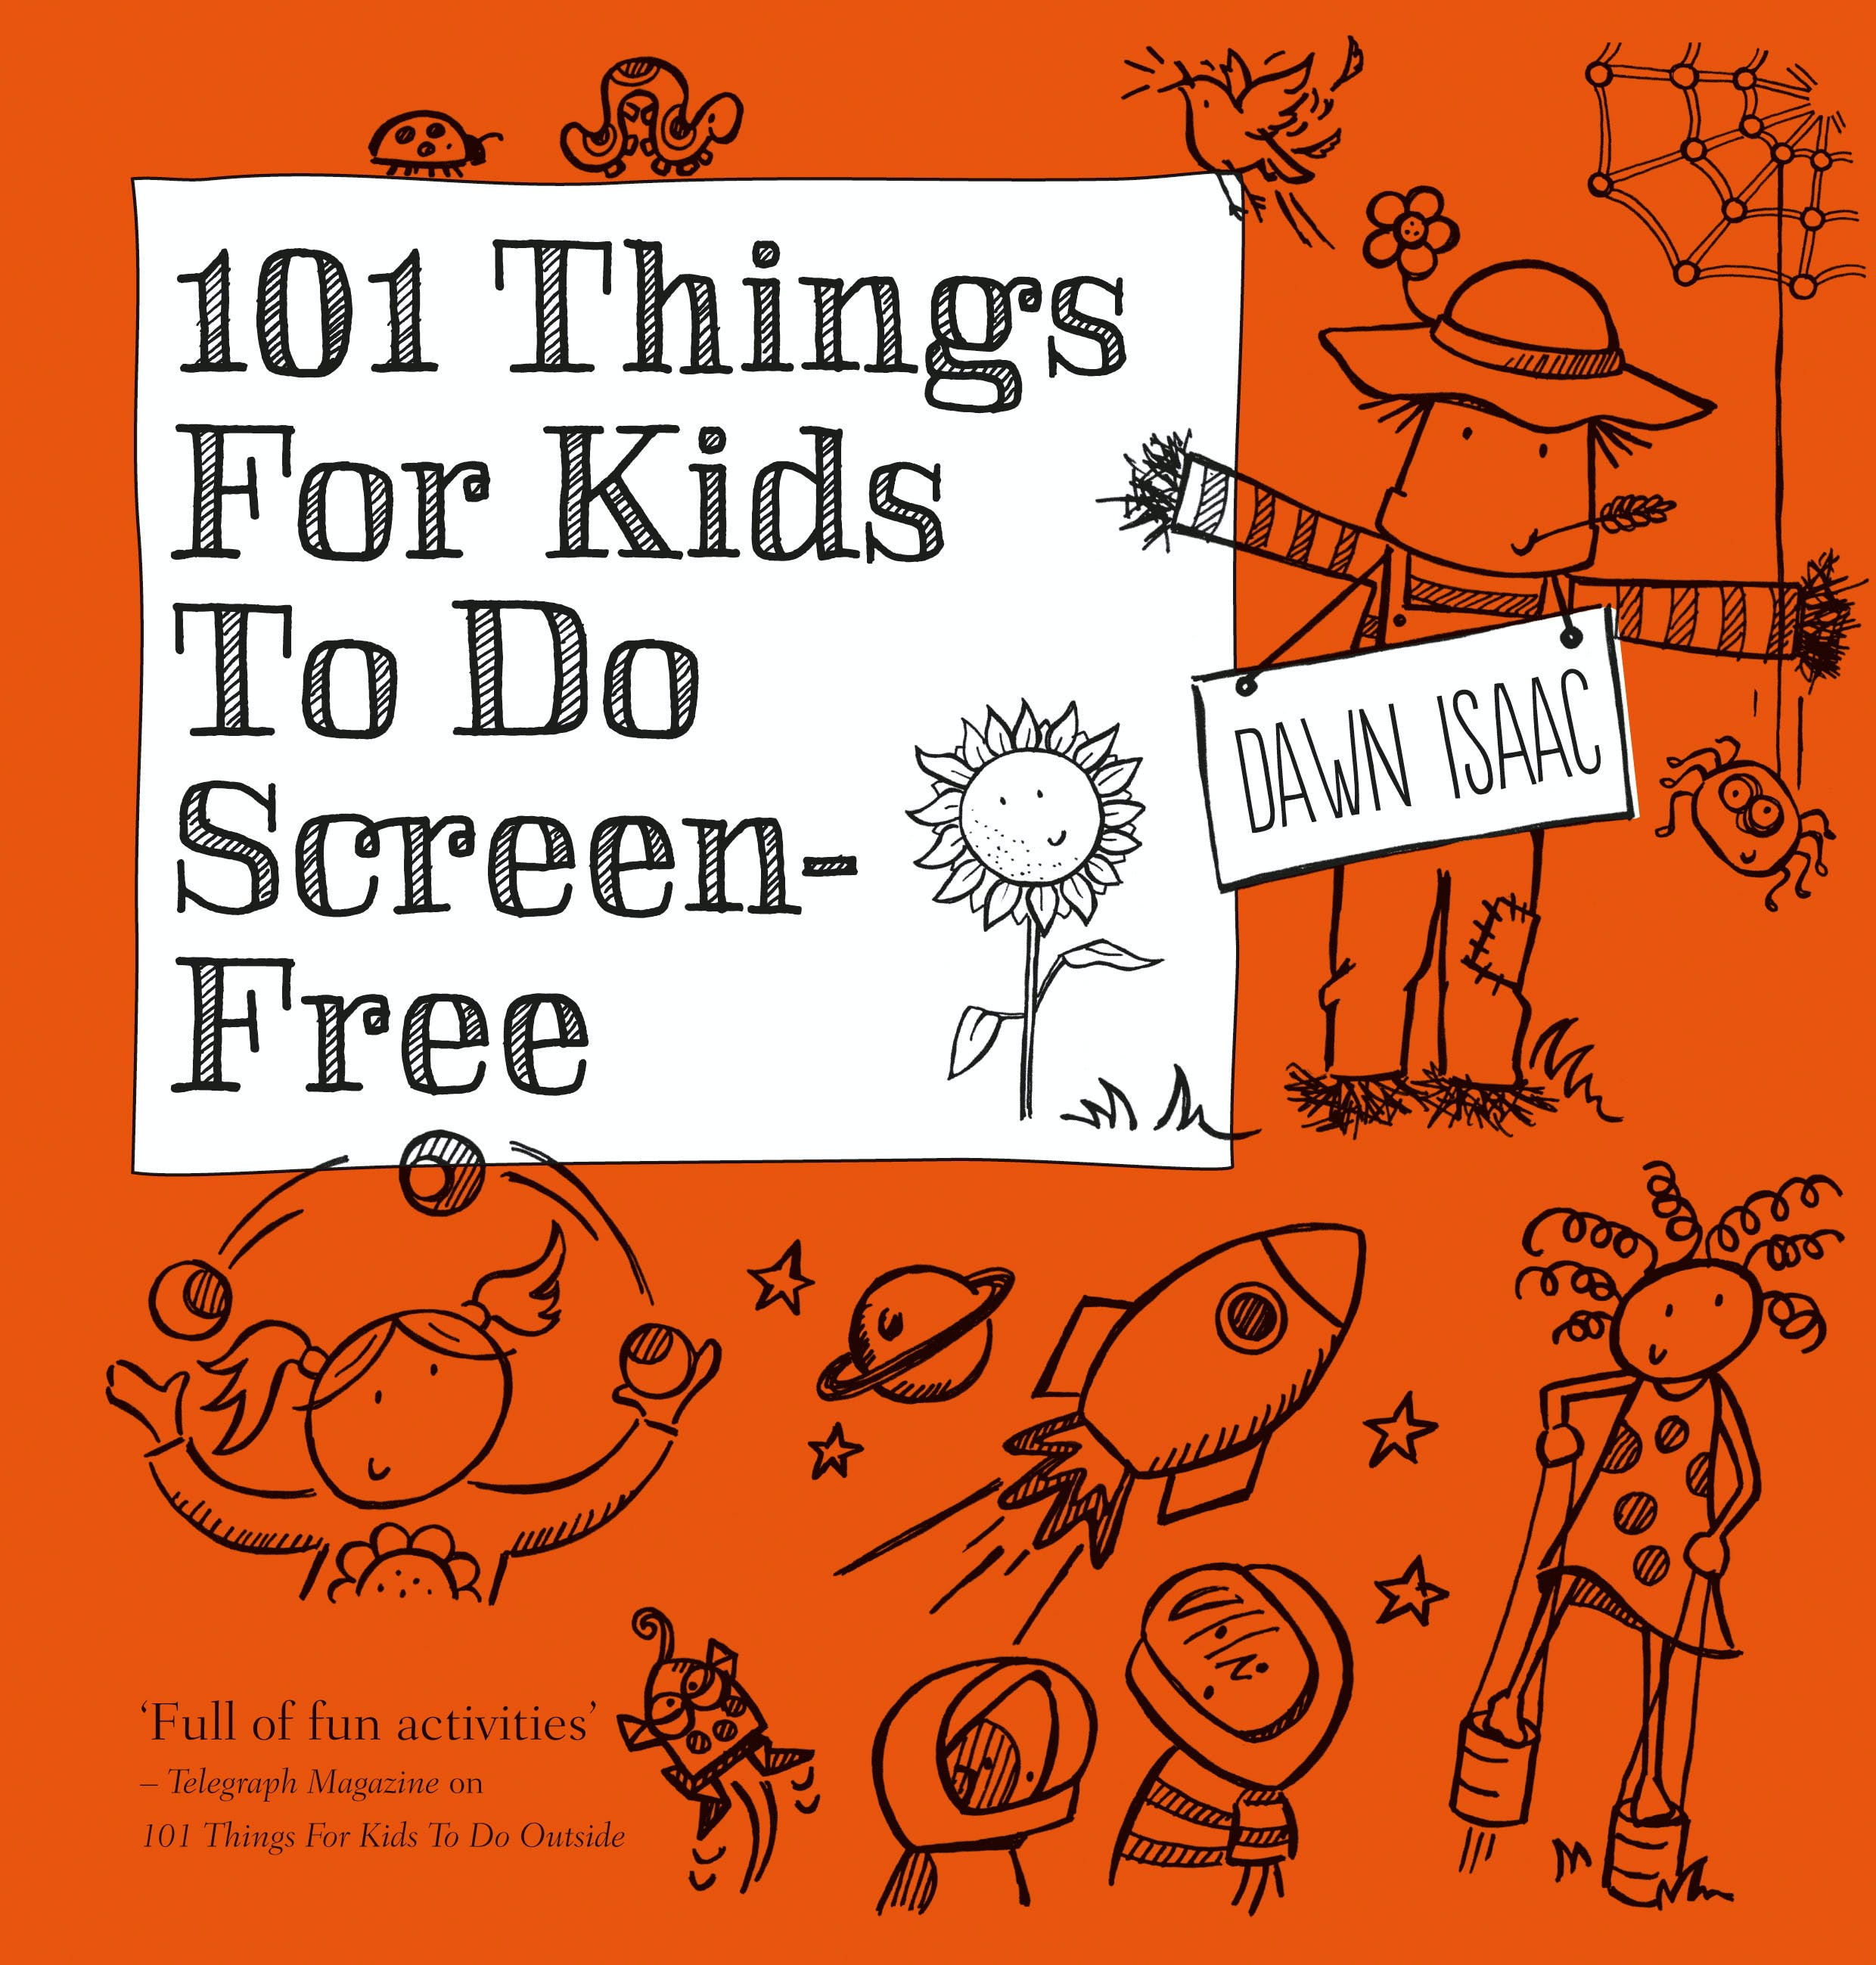 101 Things for Kids to do Screen-Free  by Dawn Isaac